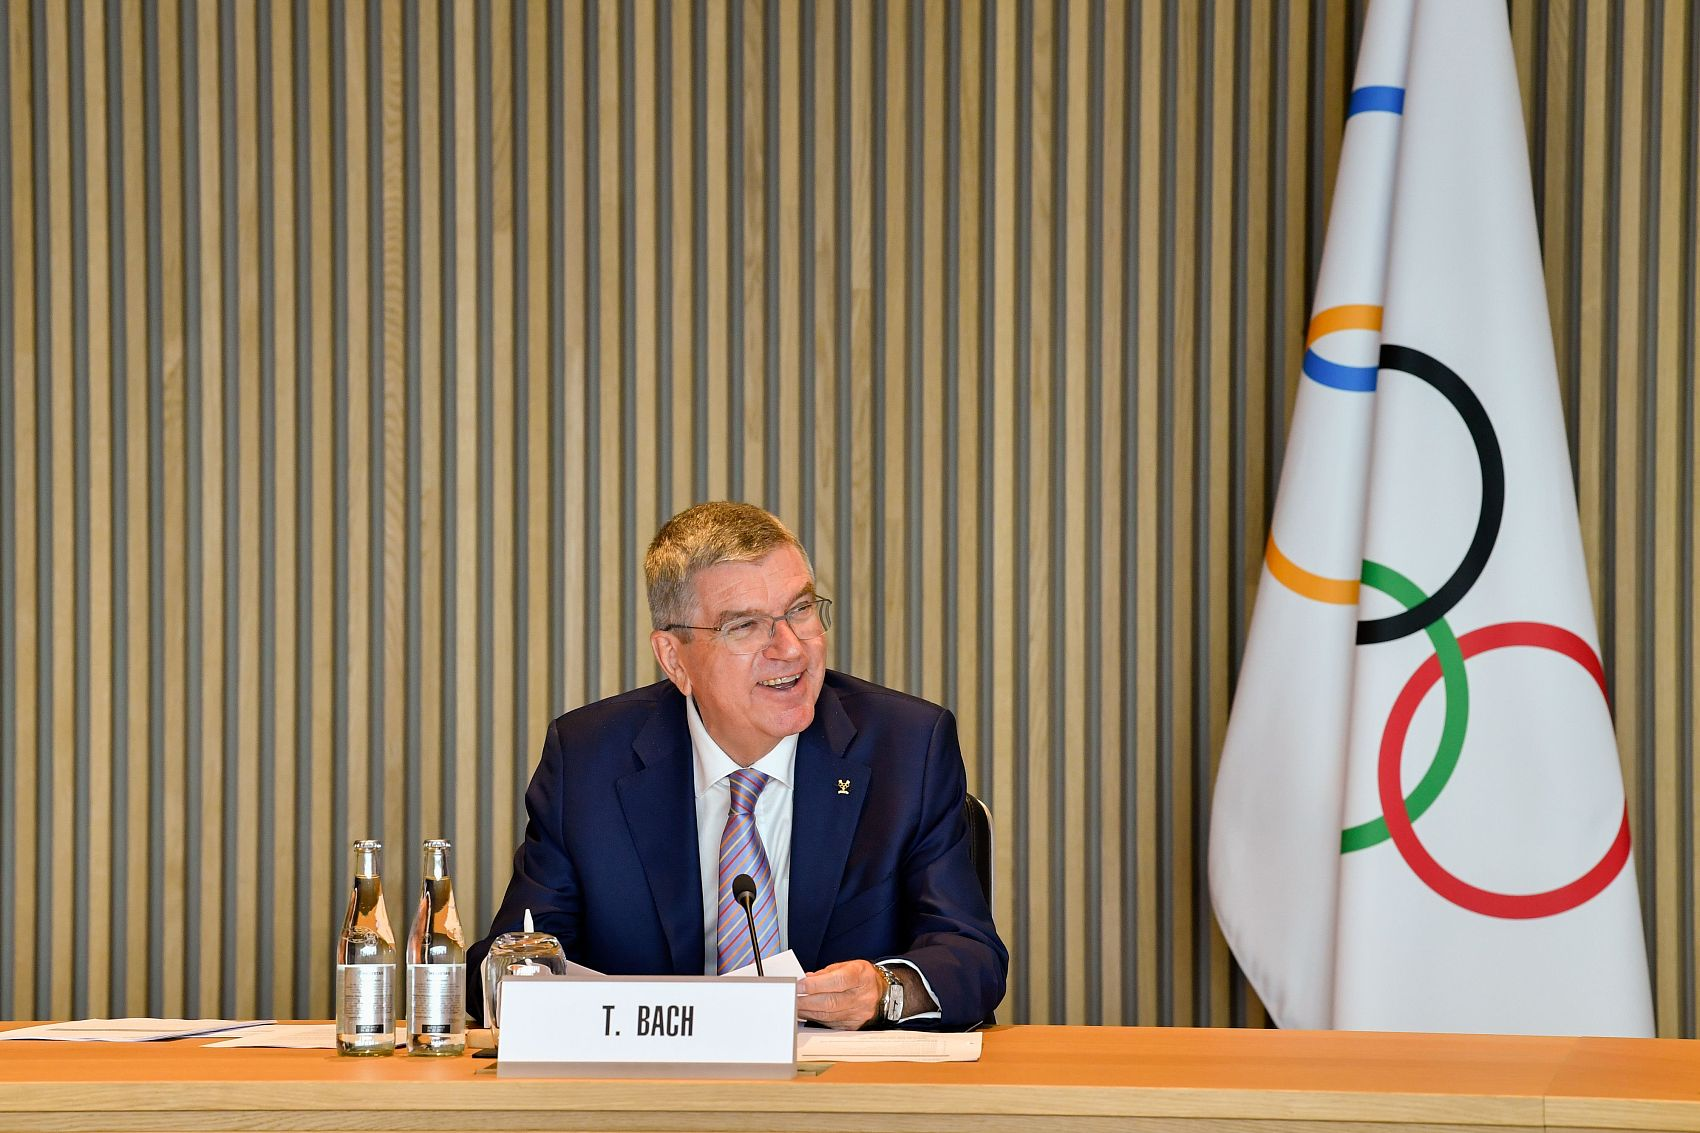 IOC president Bach to visit Japan in mid-November